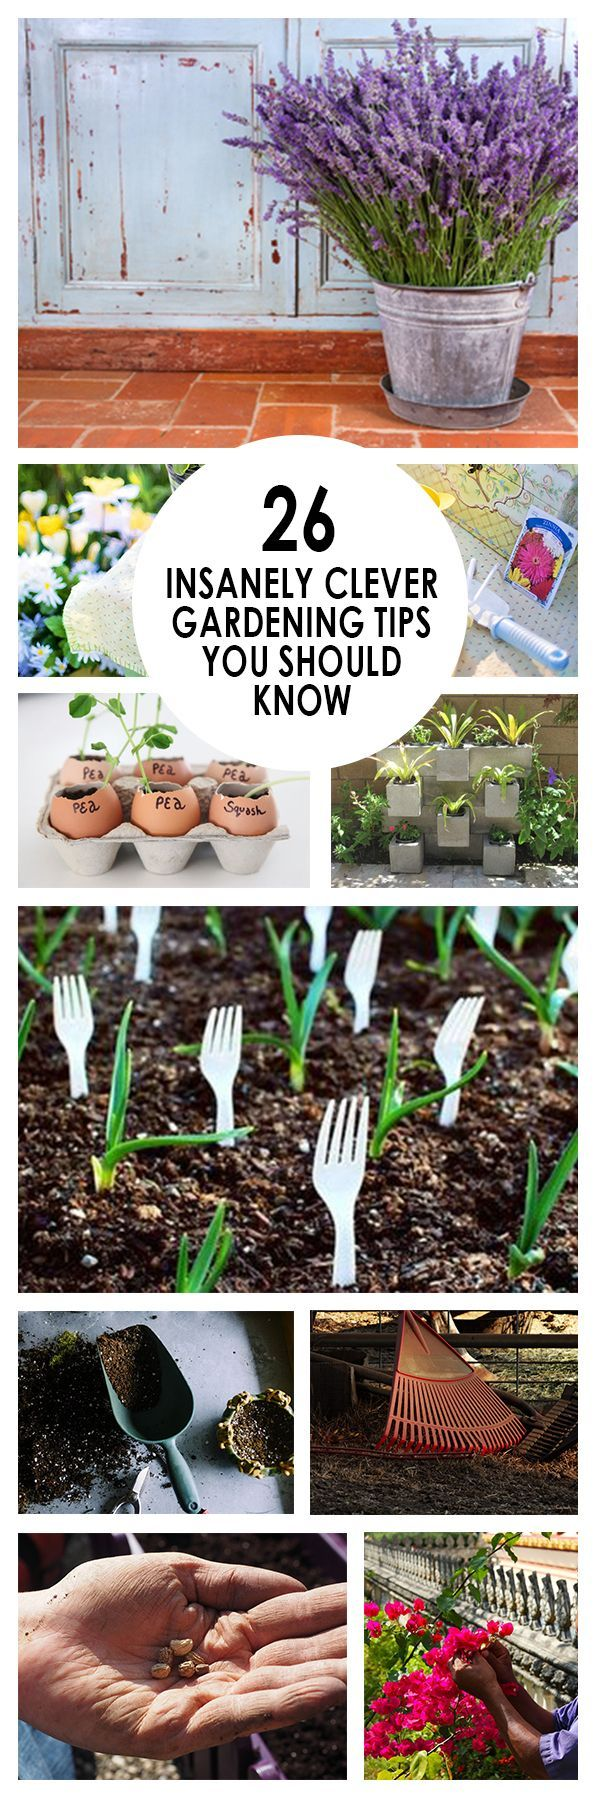 26 Insanely Clever Gardening Tips You Should Know (1)